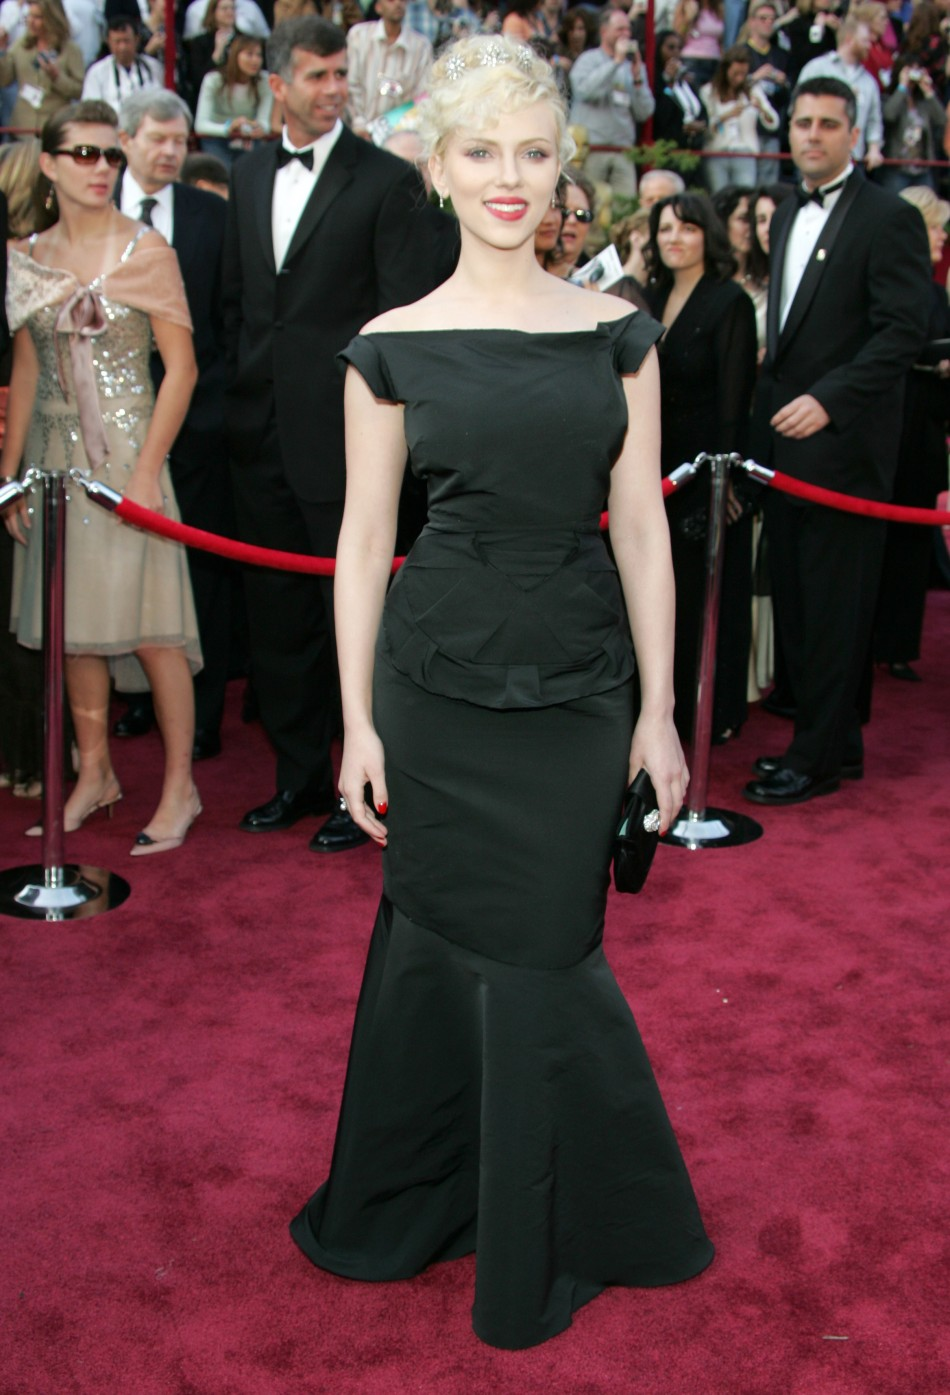 Actress Scarlett Johansson arrives at the 77th annual Academy Awards in Hollywood February 27, 2005.